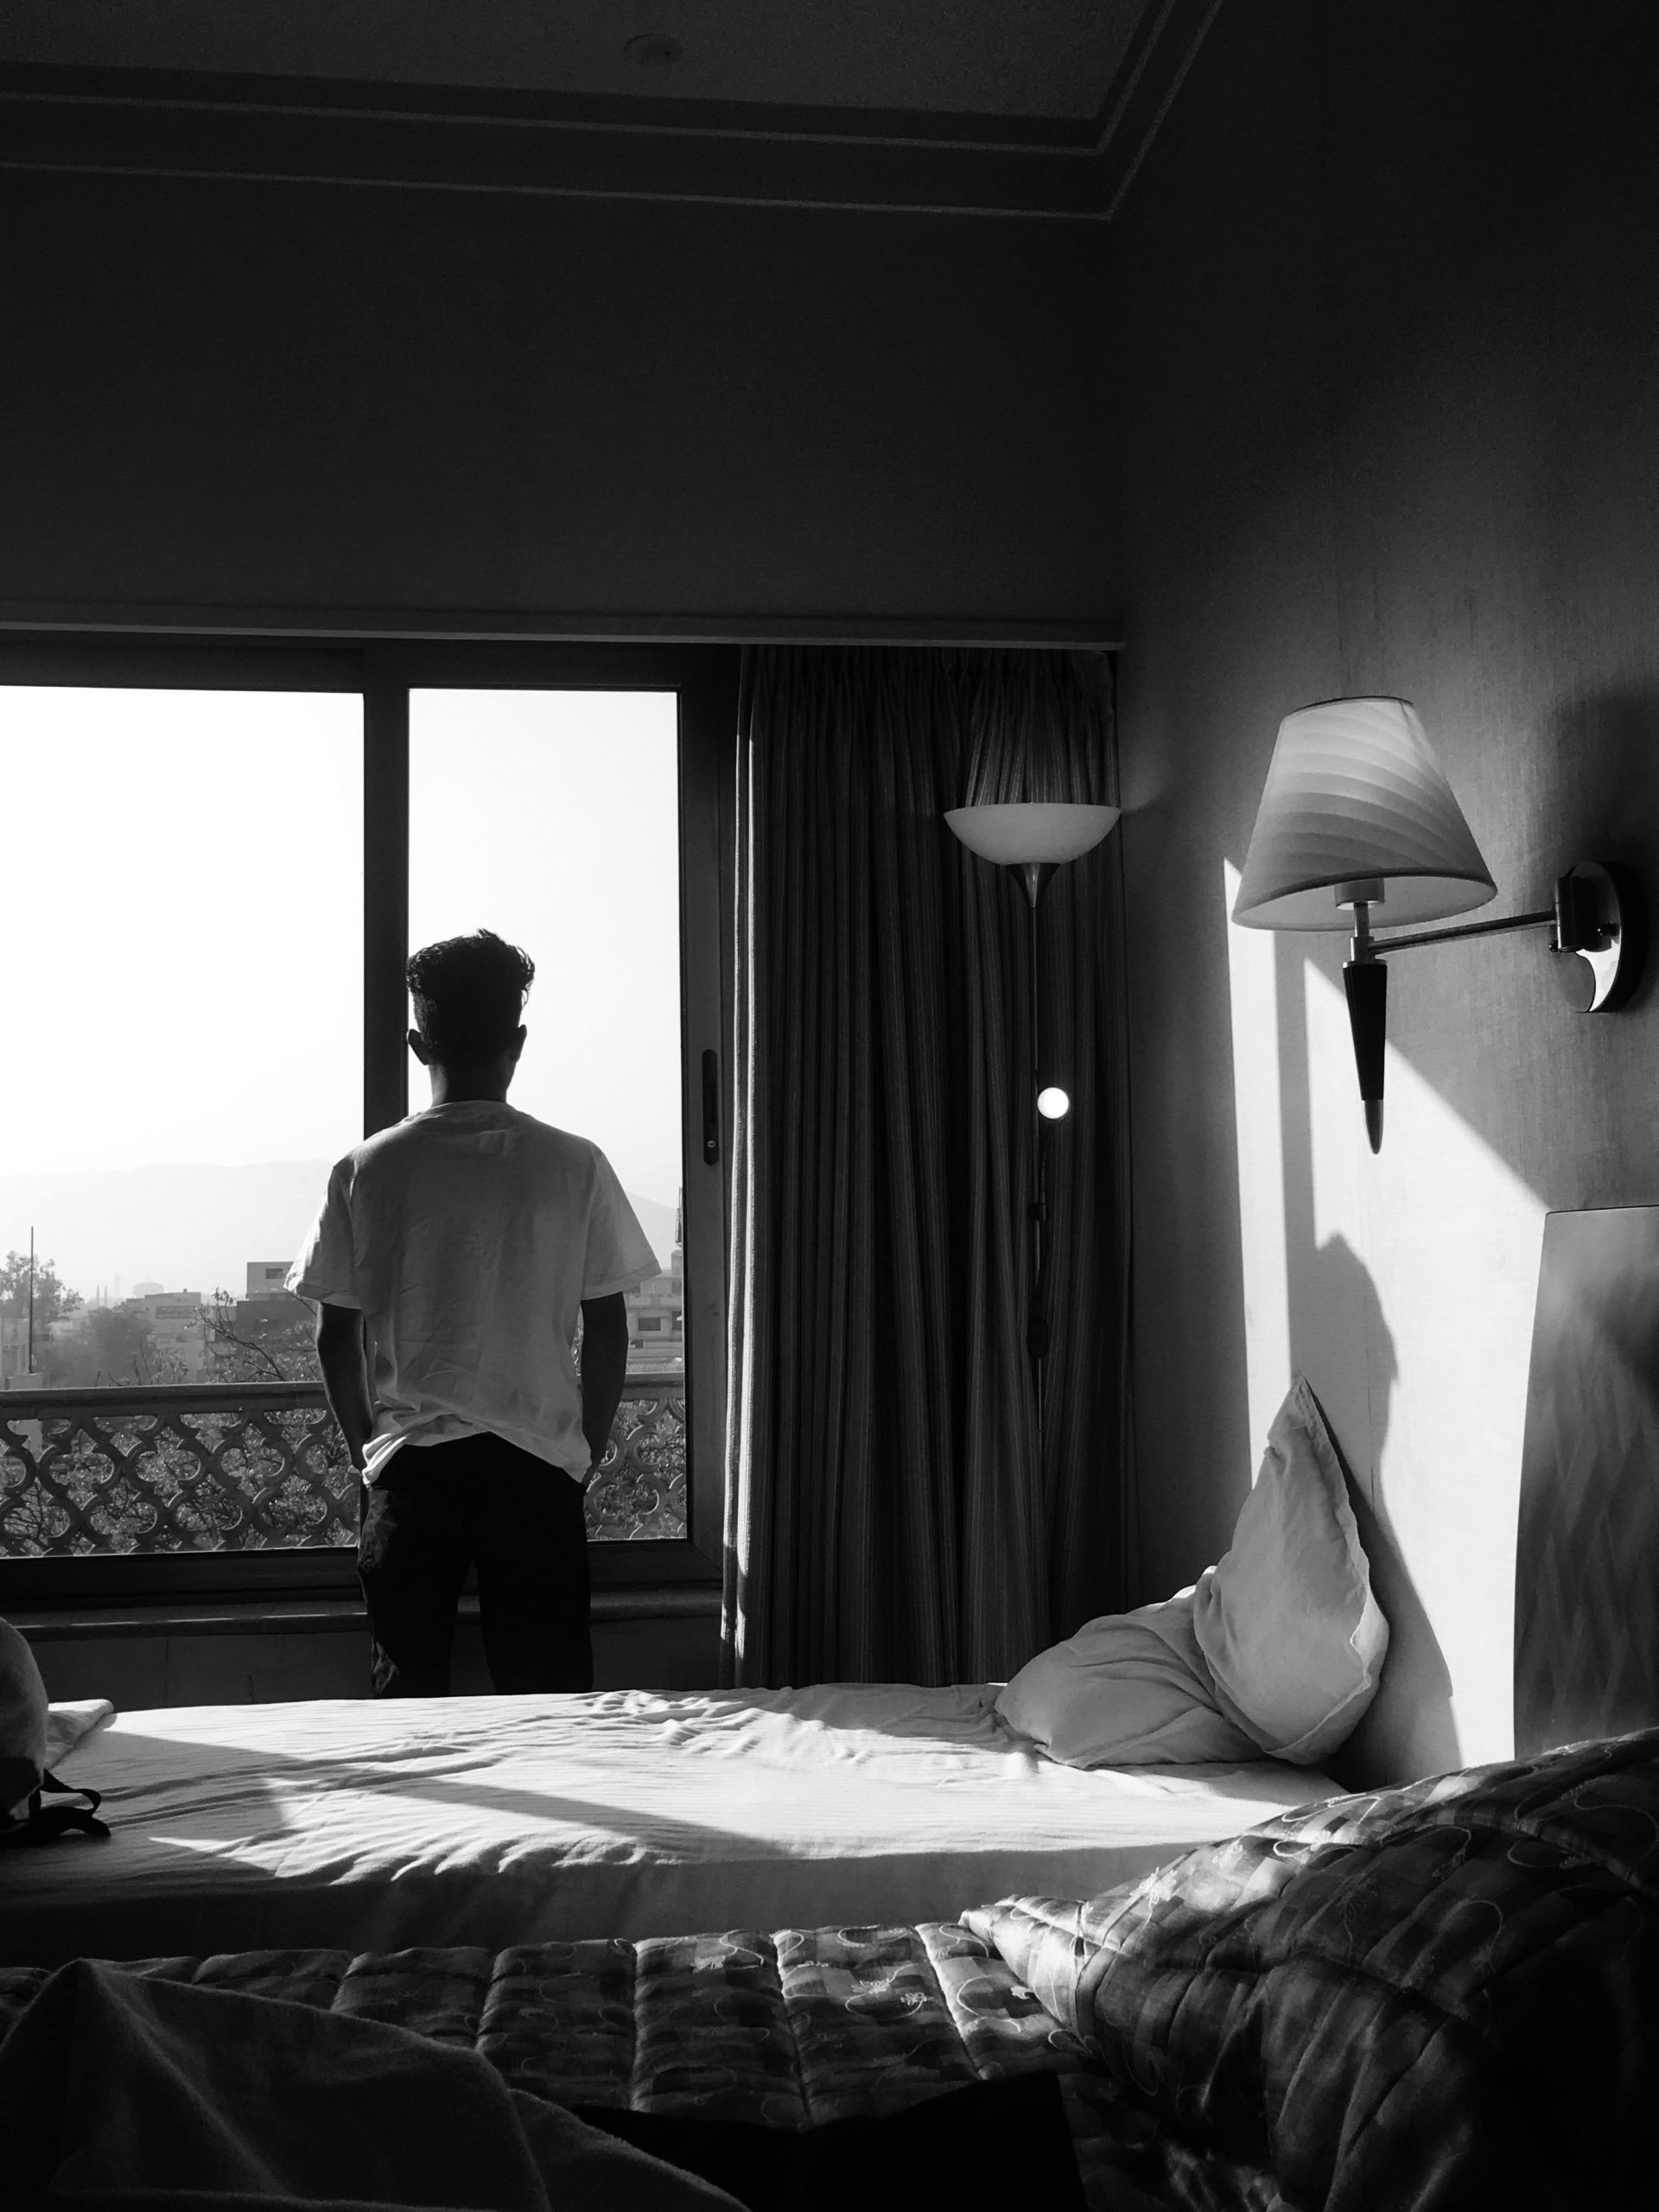 Man standing by the bed